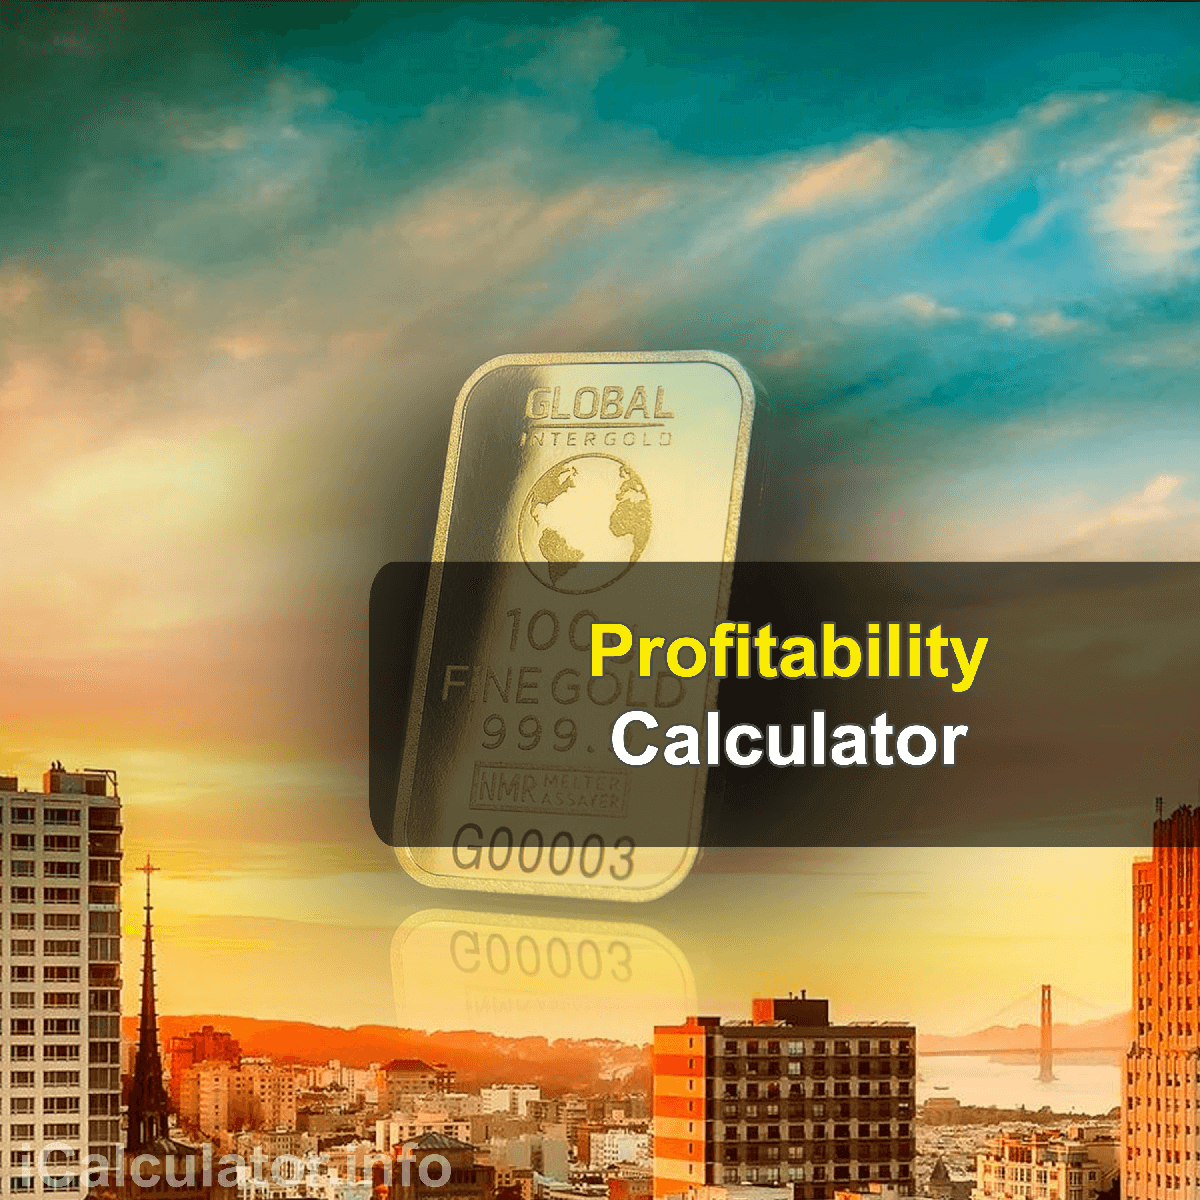 Profitability Index Calculator. This image provides details of how to calculate the profitability index using a calculator and notepad. By using the profibility index ratio formula, the Profitability Index Calculator provides a true calculation of the relationship between cost and benefits of a project.